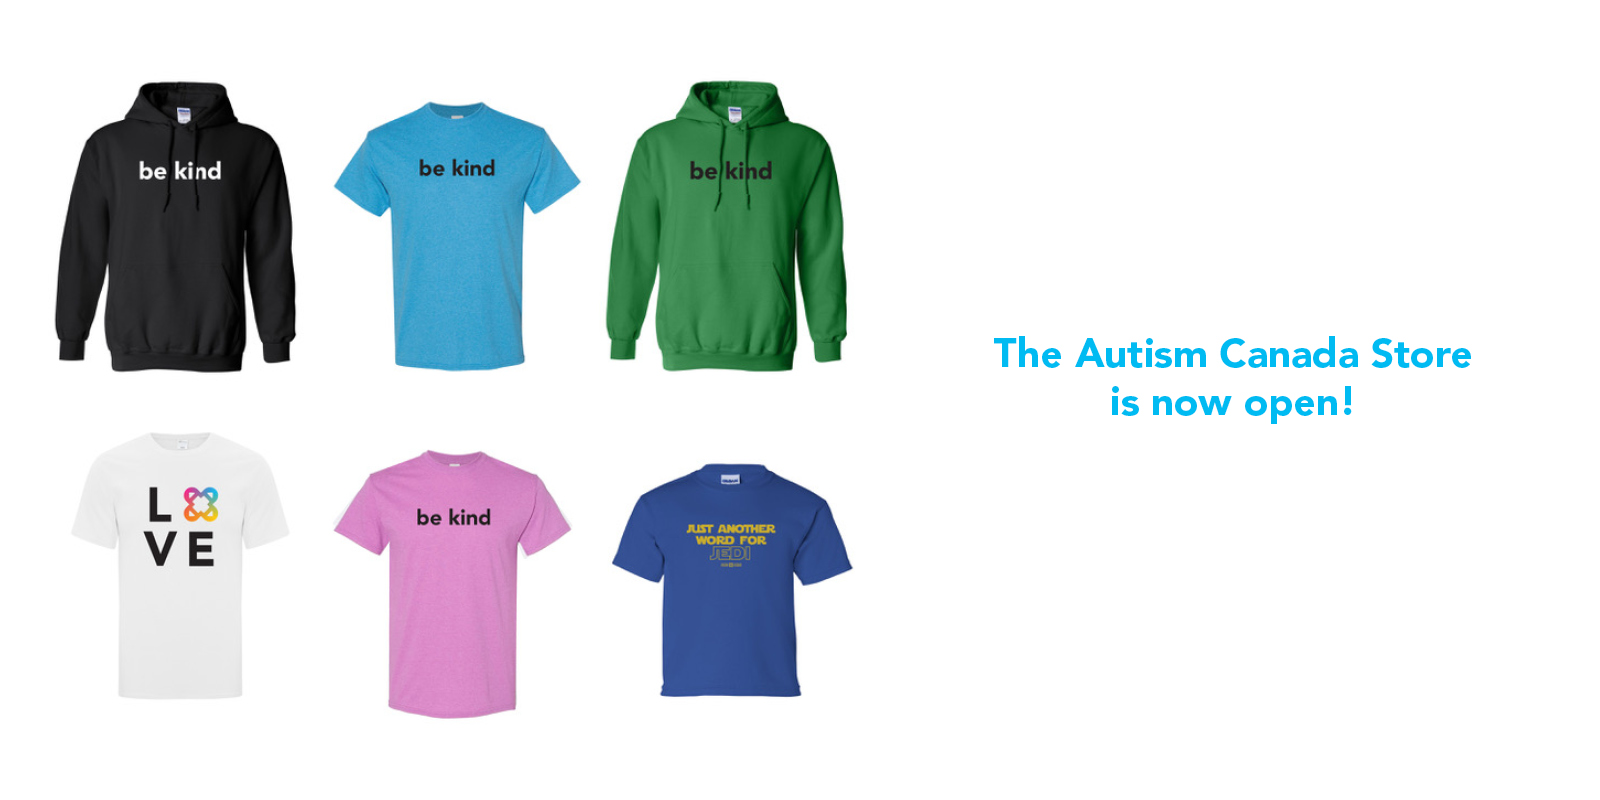 The Autism Canada Store is now open!